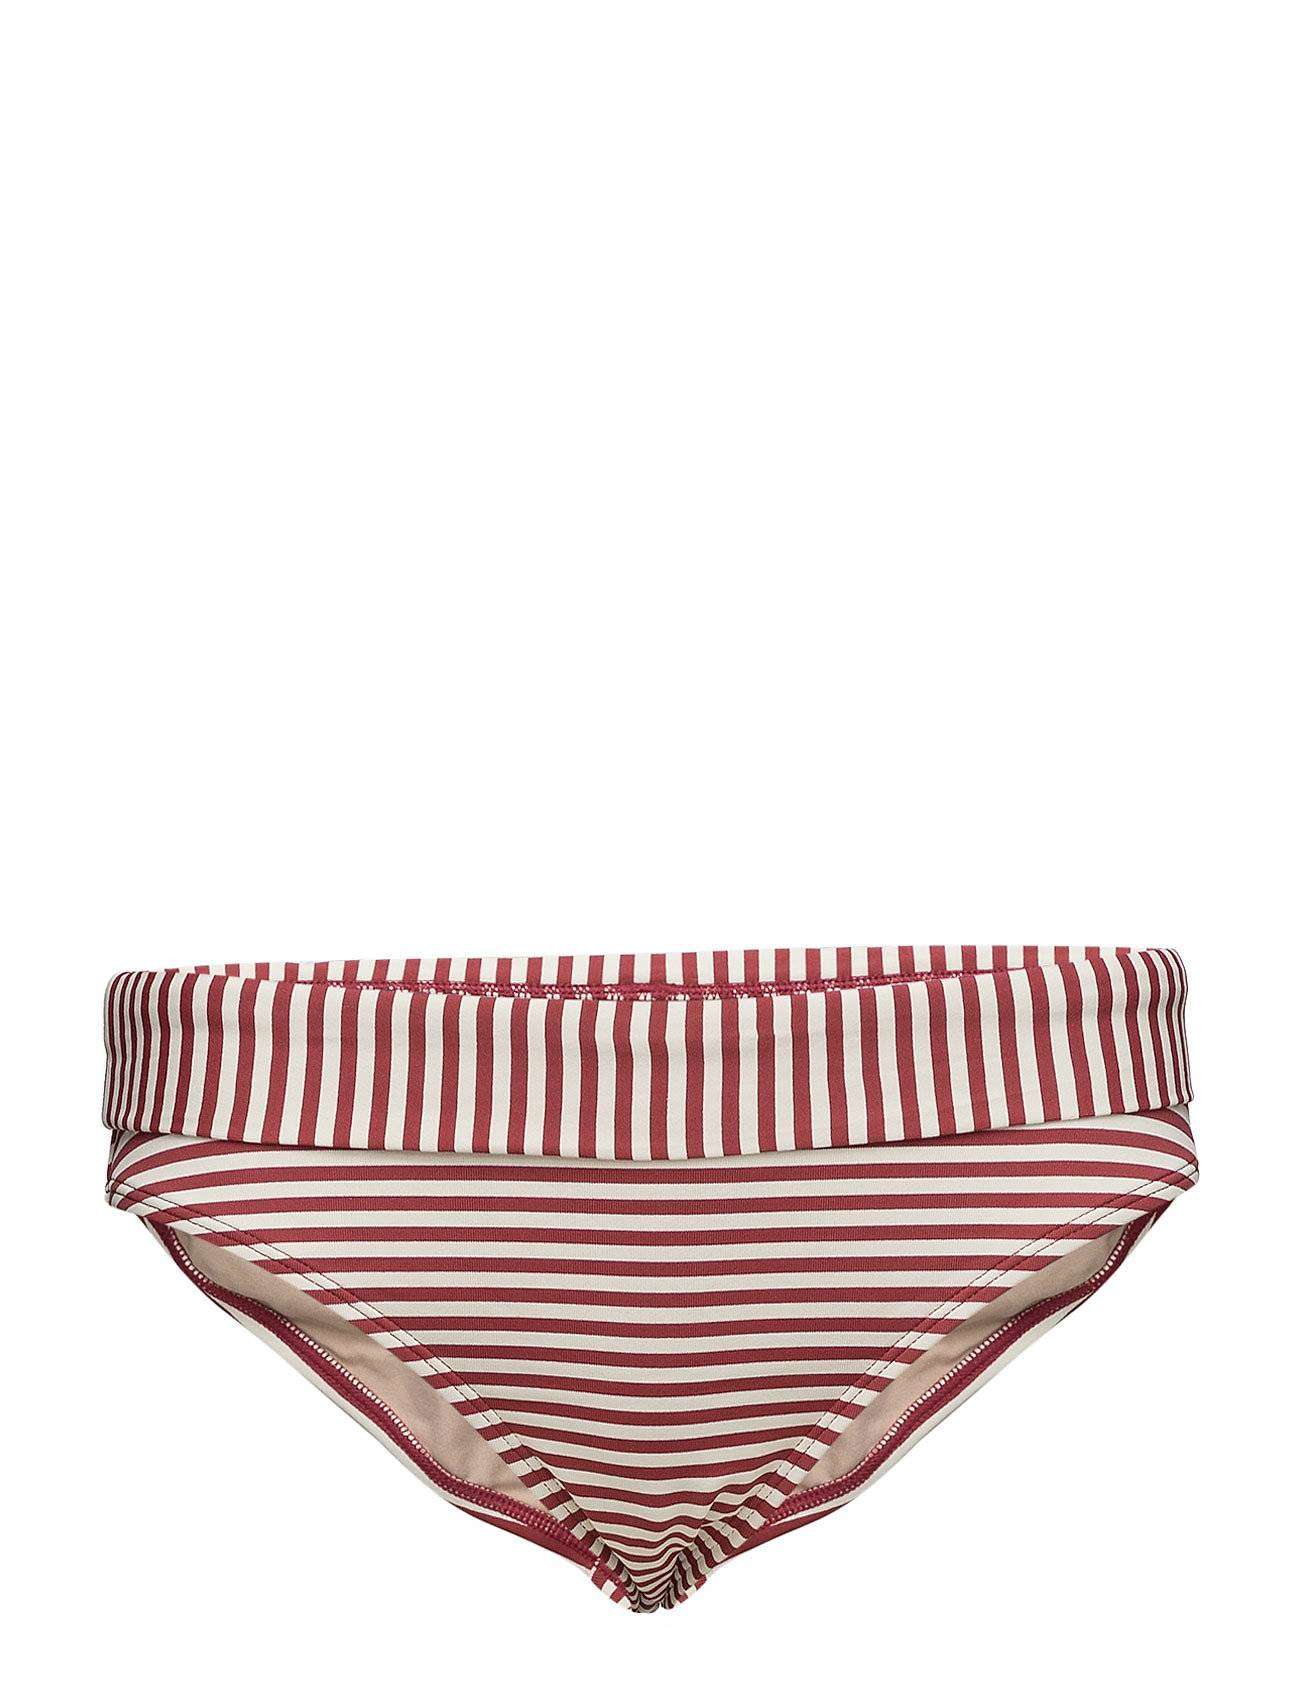 Marlies Dekkers Md Holi Vintage Fold Down Briefs